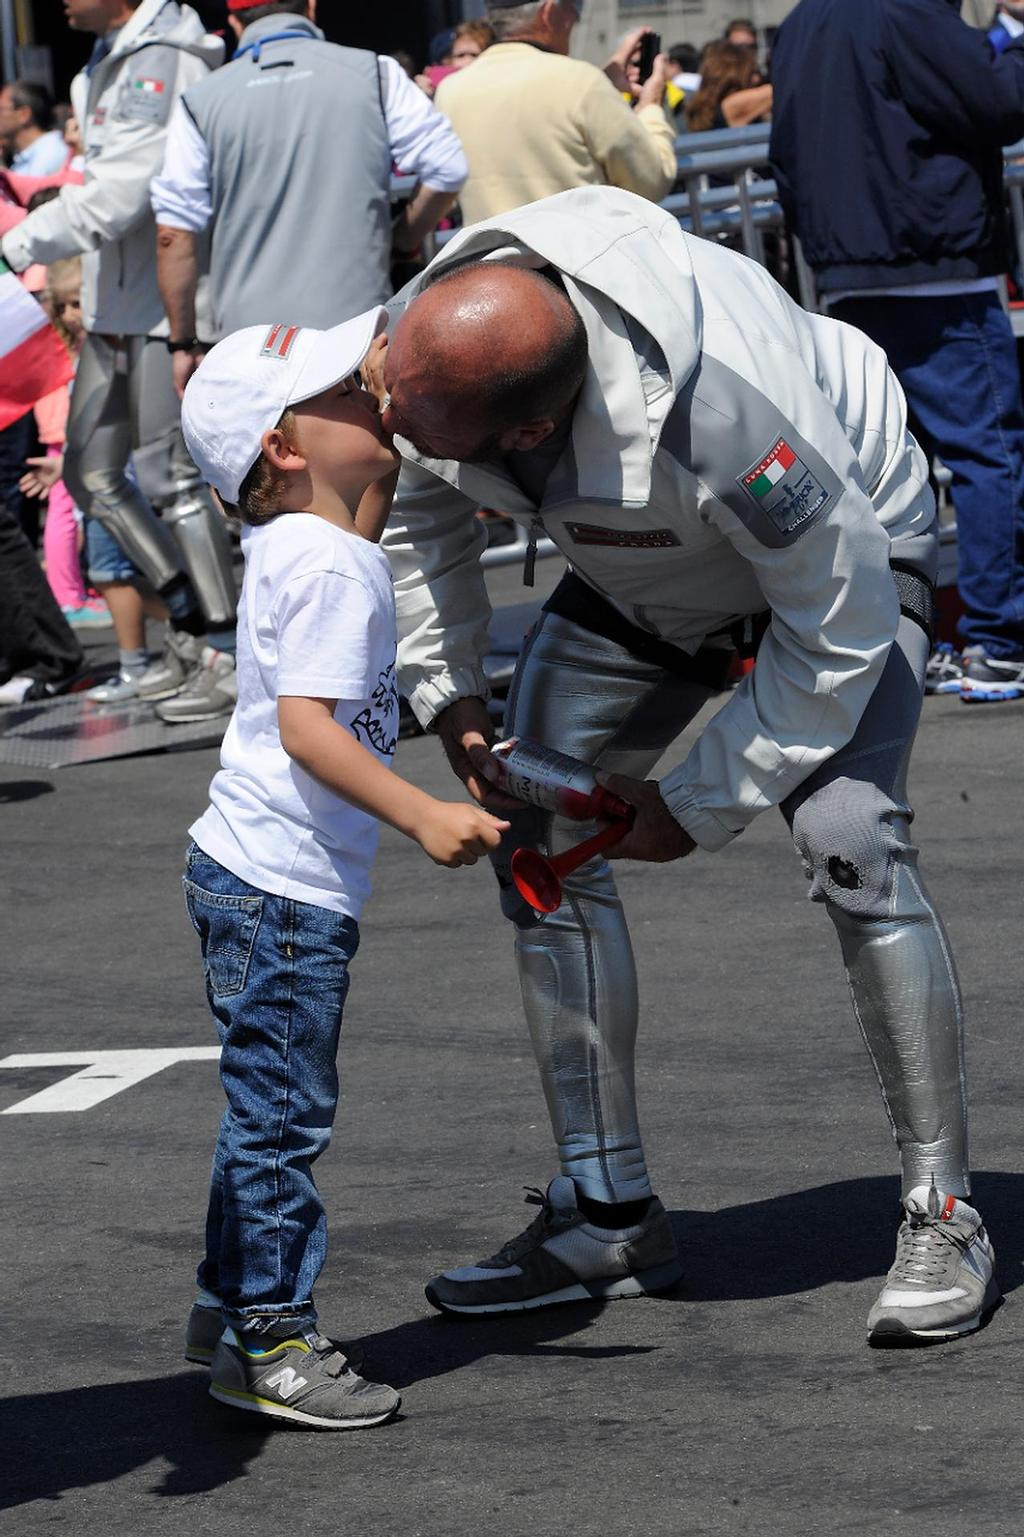 Skipper Max Sirena gives his son Lorenzo, 4, a kiss good-bye before going out to sail in the Louis Vuitton Cup on August 21, 2013 in San Francisco California. ©  SW